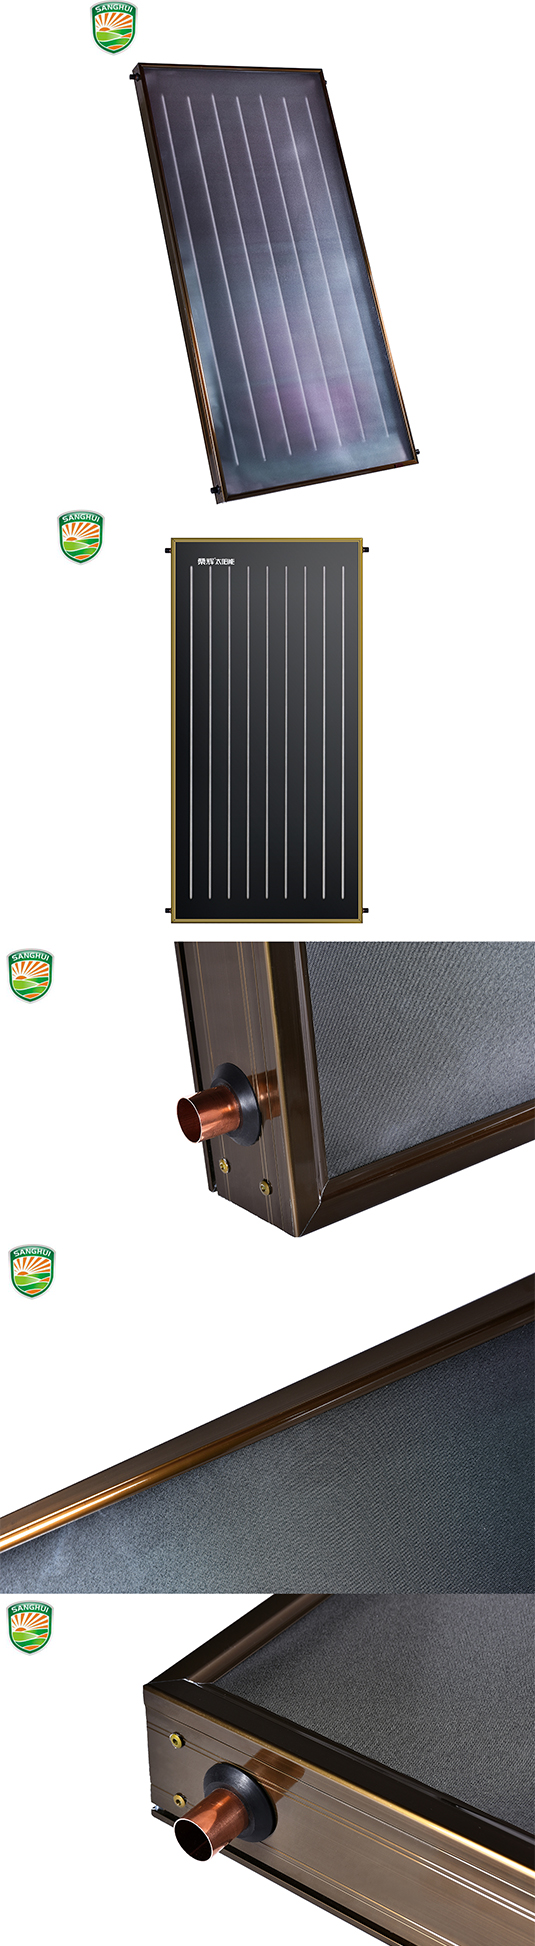 SHe-BK China Factory Directly Sale Black Chrome Flat Plate Solar Collector Price